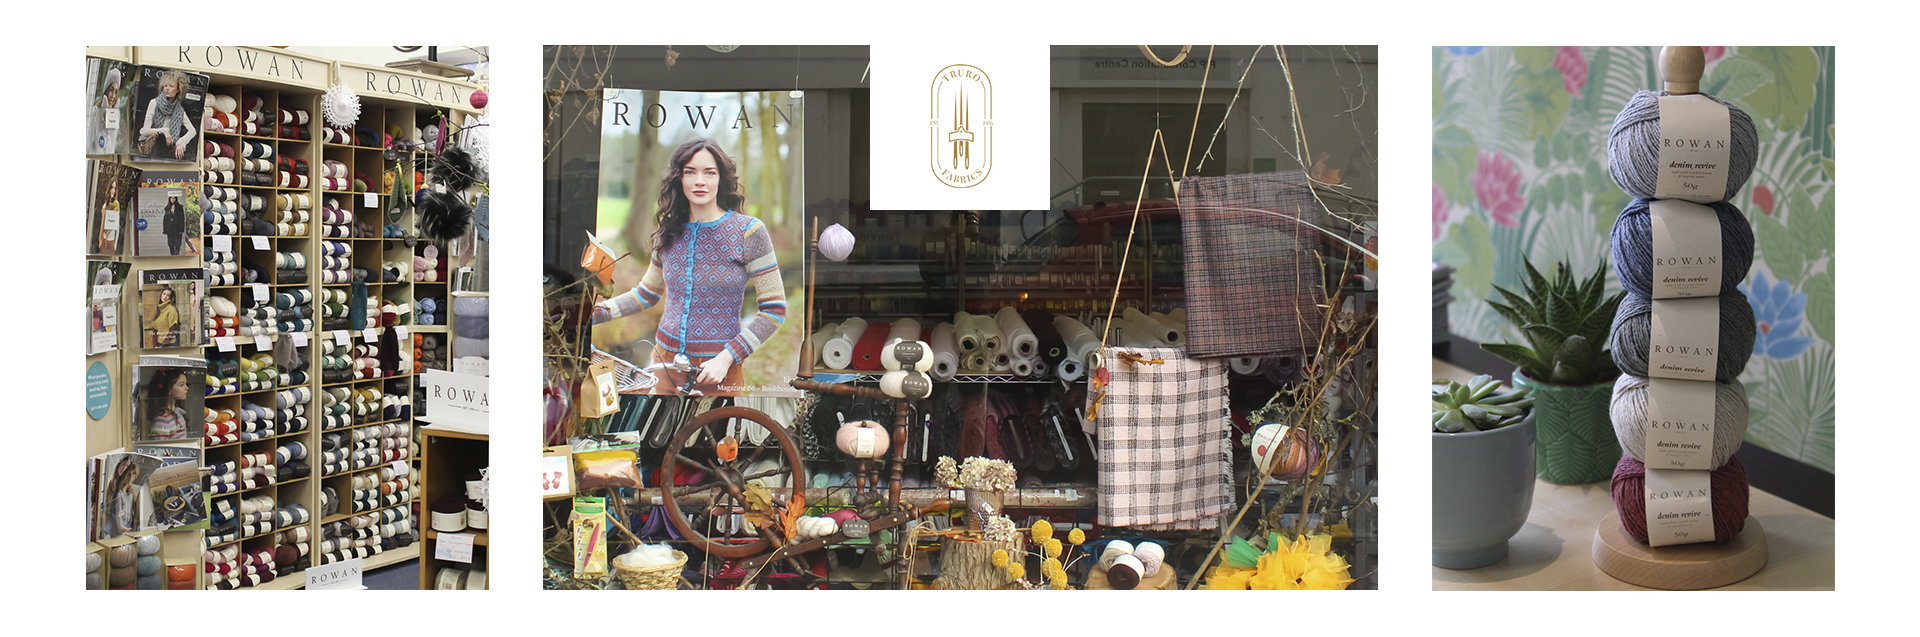 We are a small, independent family run knitting & sewing emporium based in the heart of Cornwall.